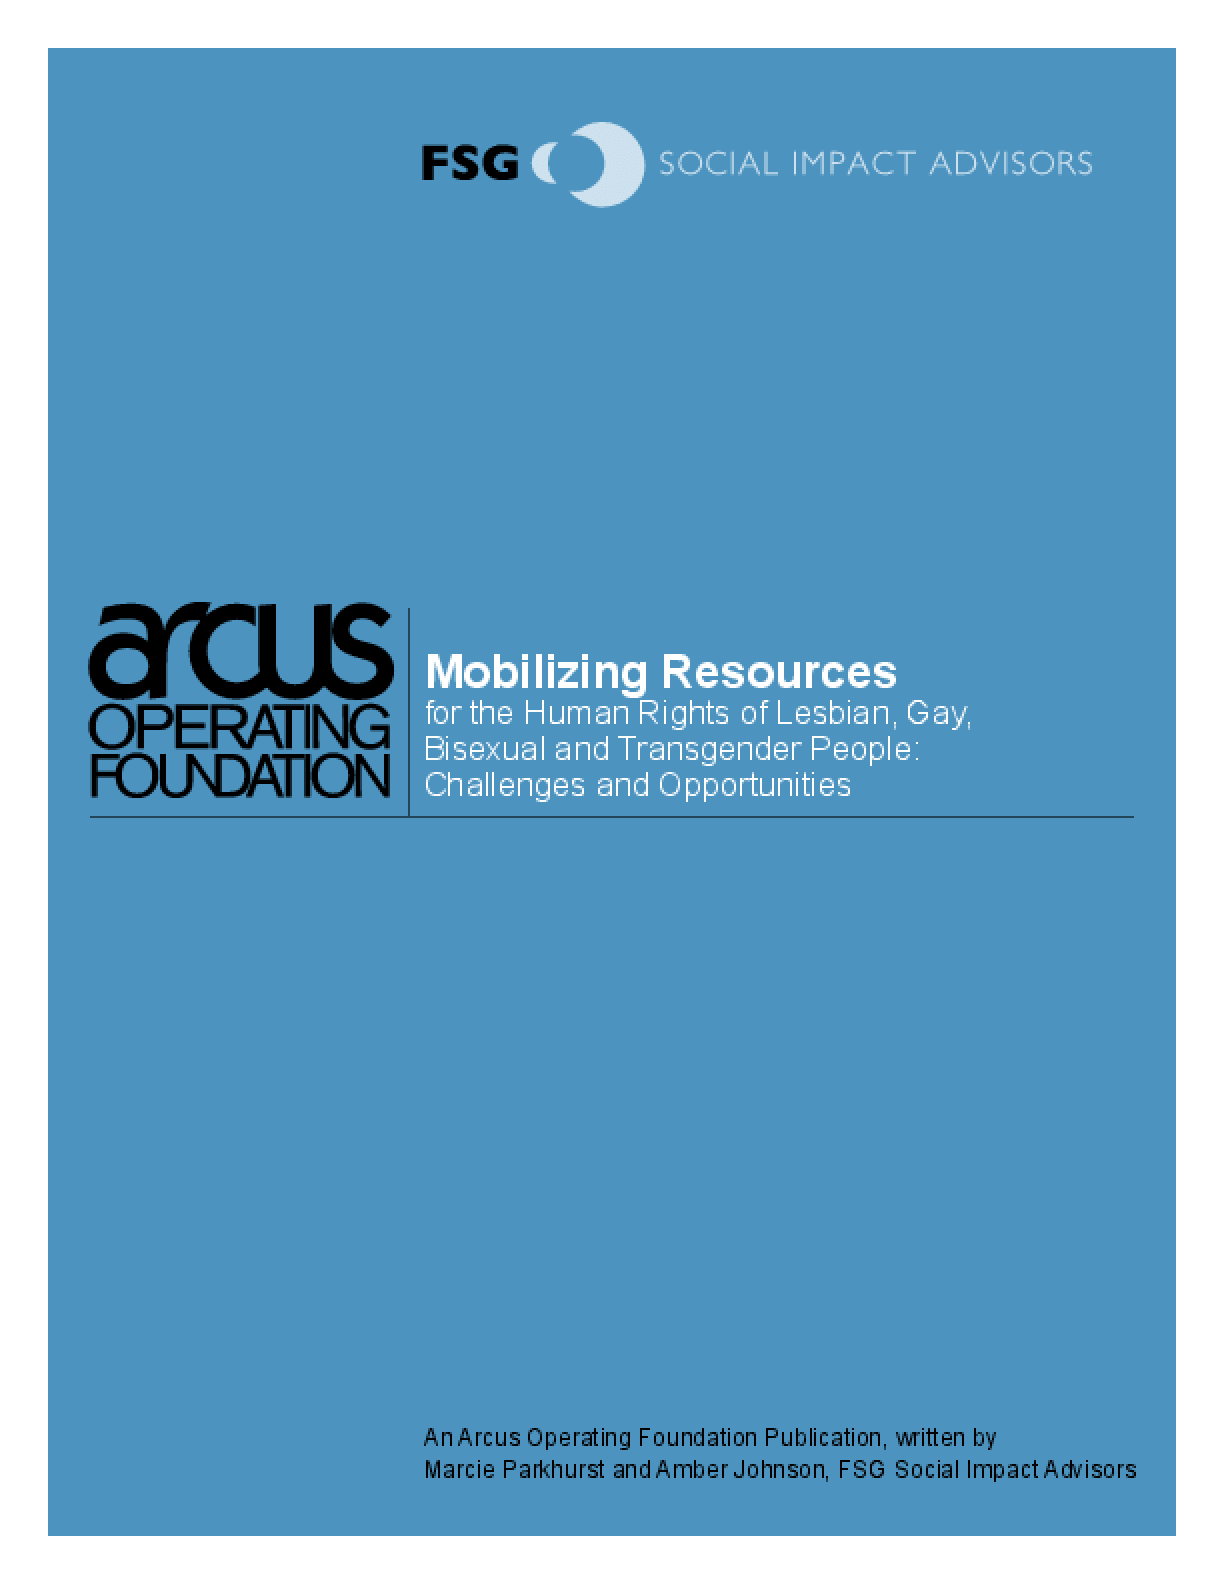 Mobilizing Resources for the Human Rights of Lesbian, Gay, Bisexual and Transgender People: Challenges and Opportunities